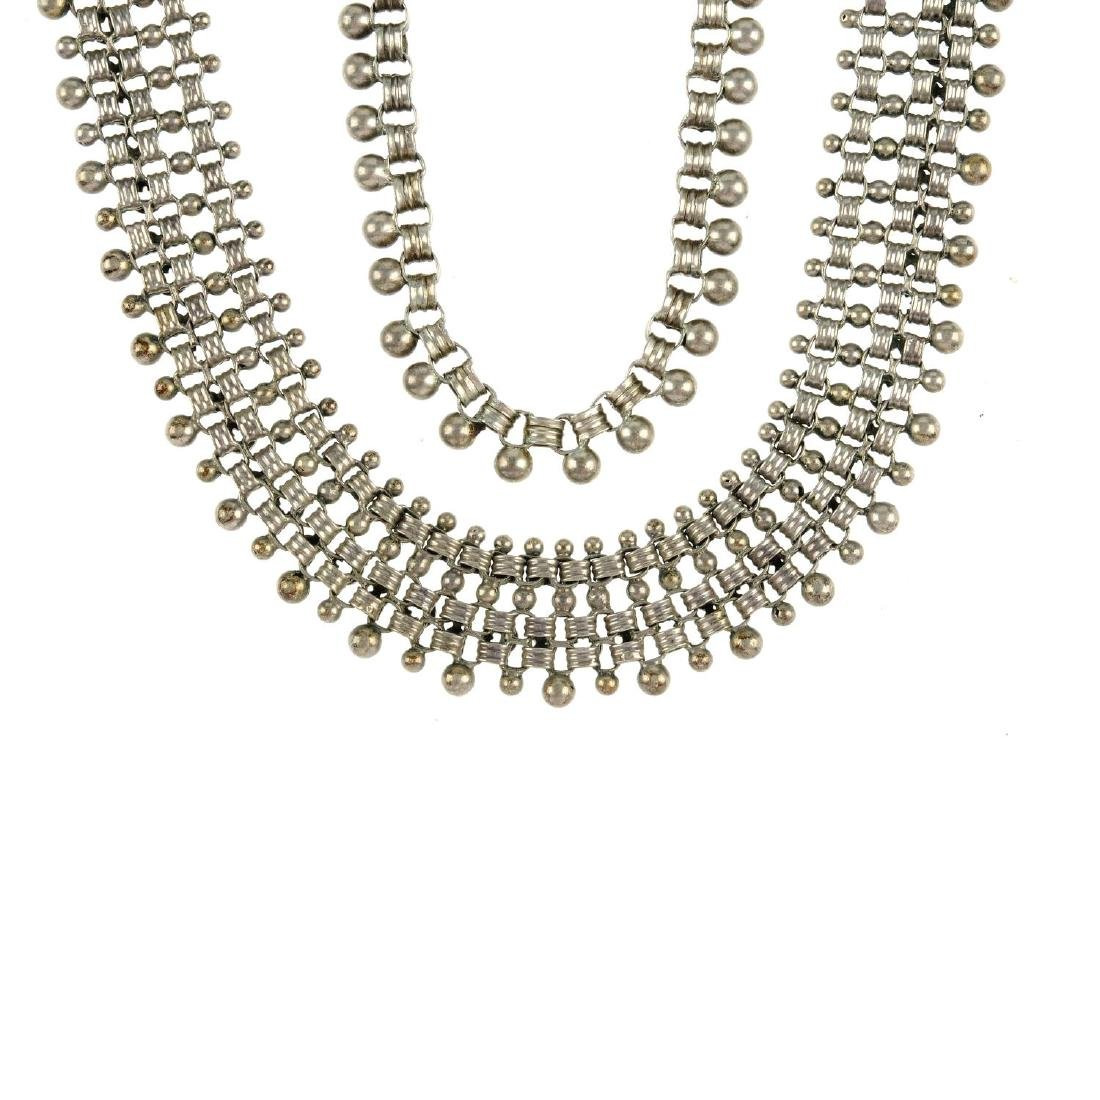 A late Victorian silver collar and part of a late